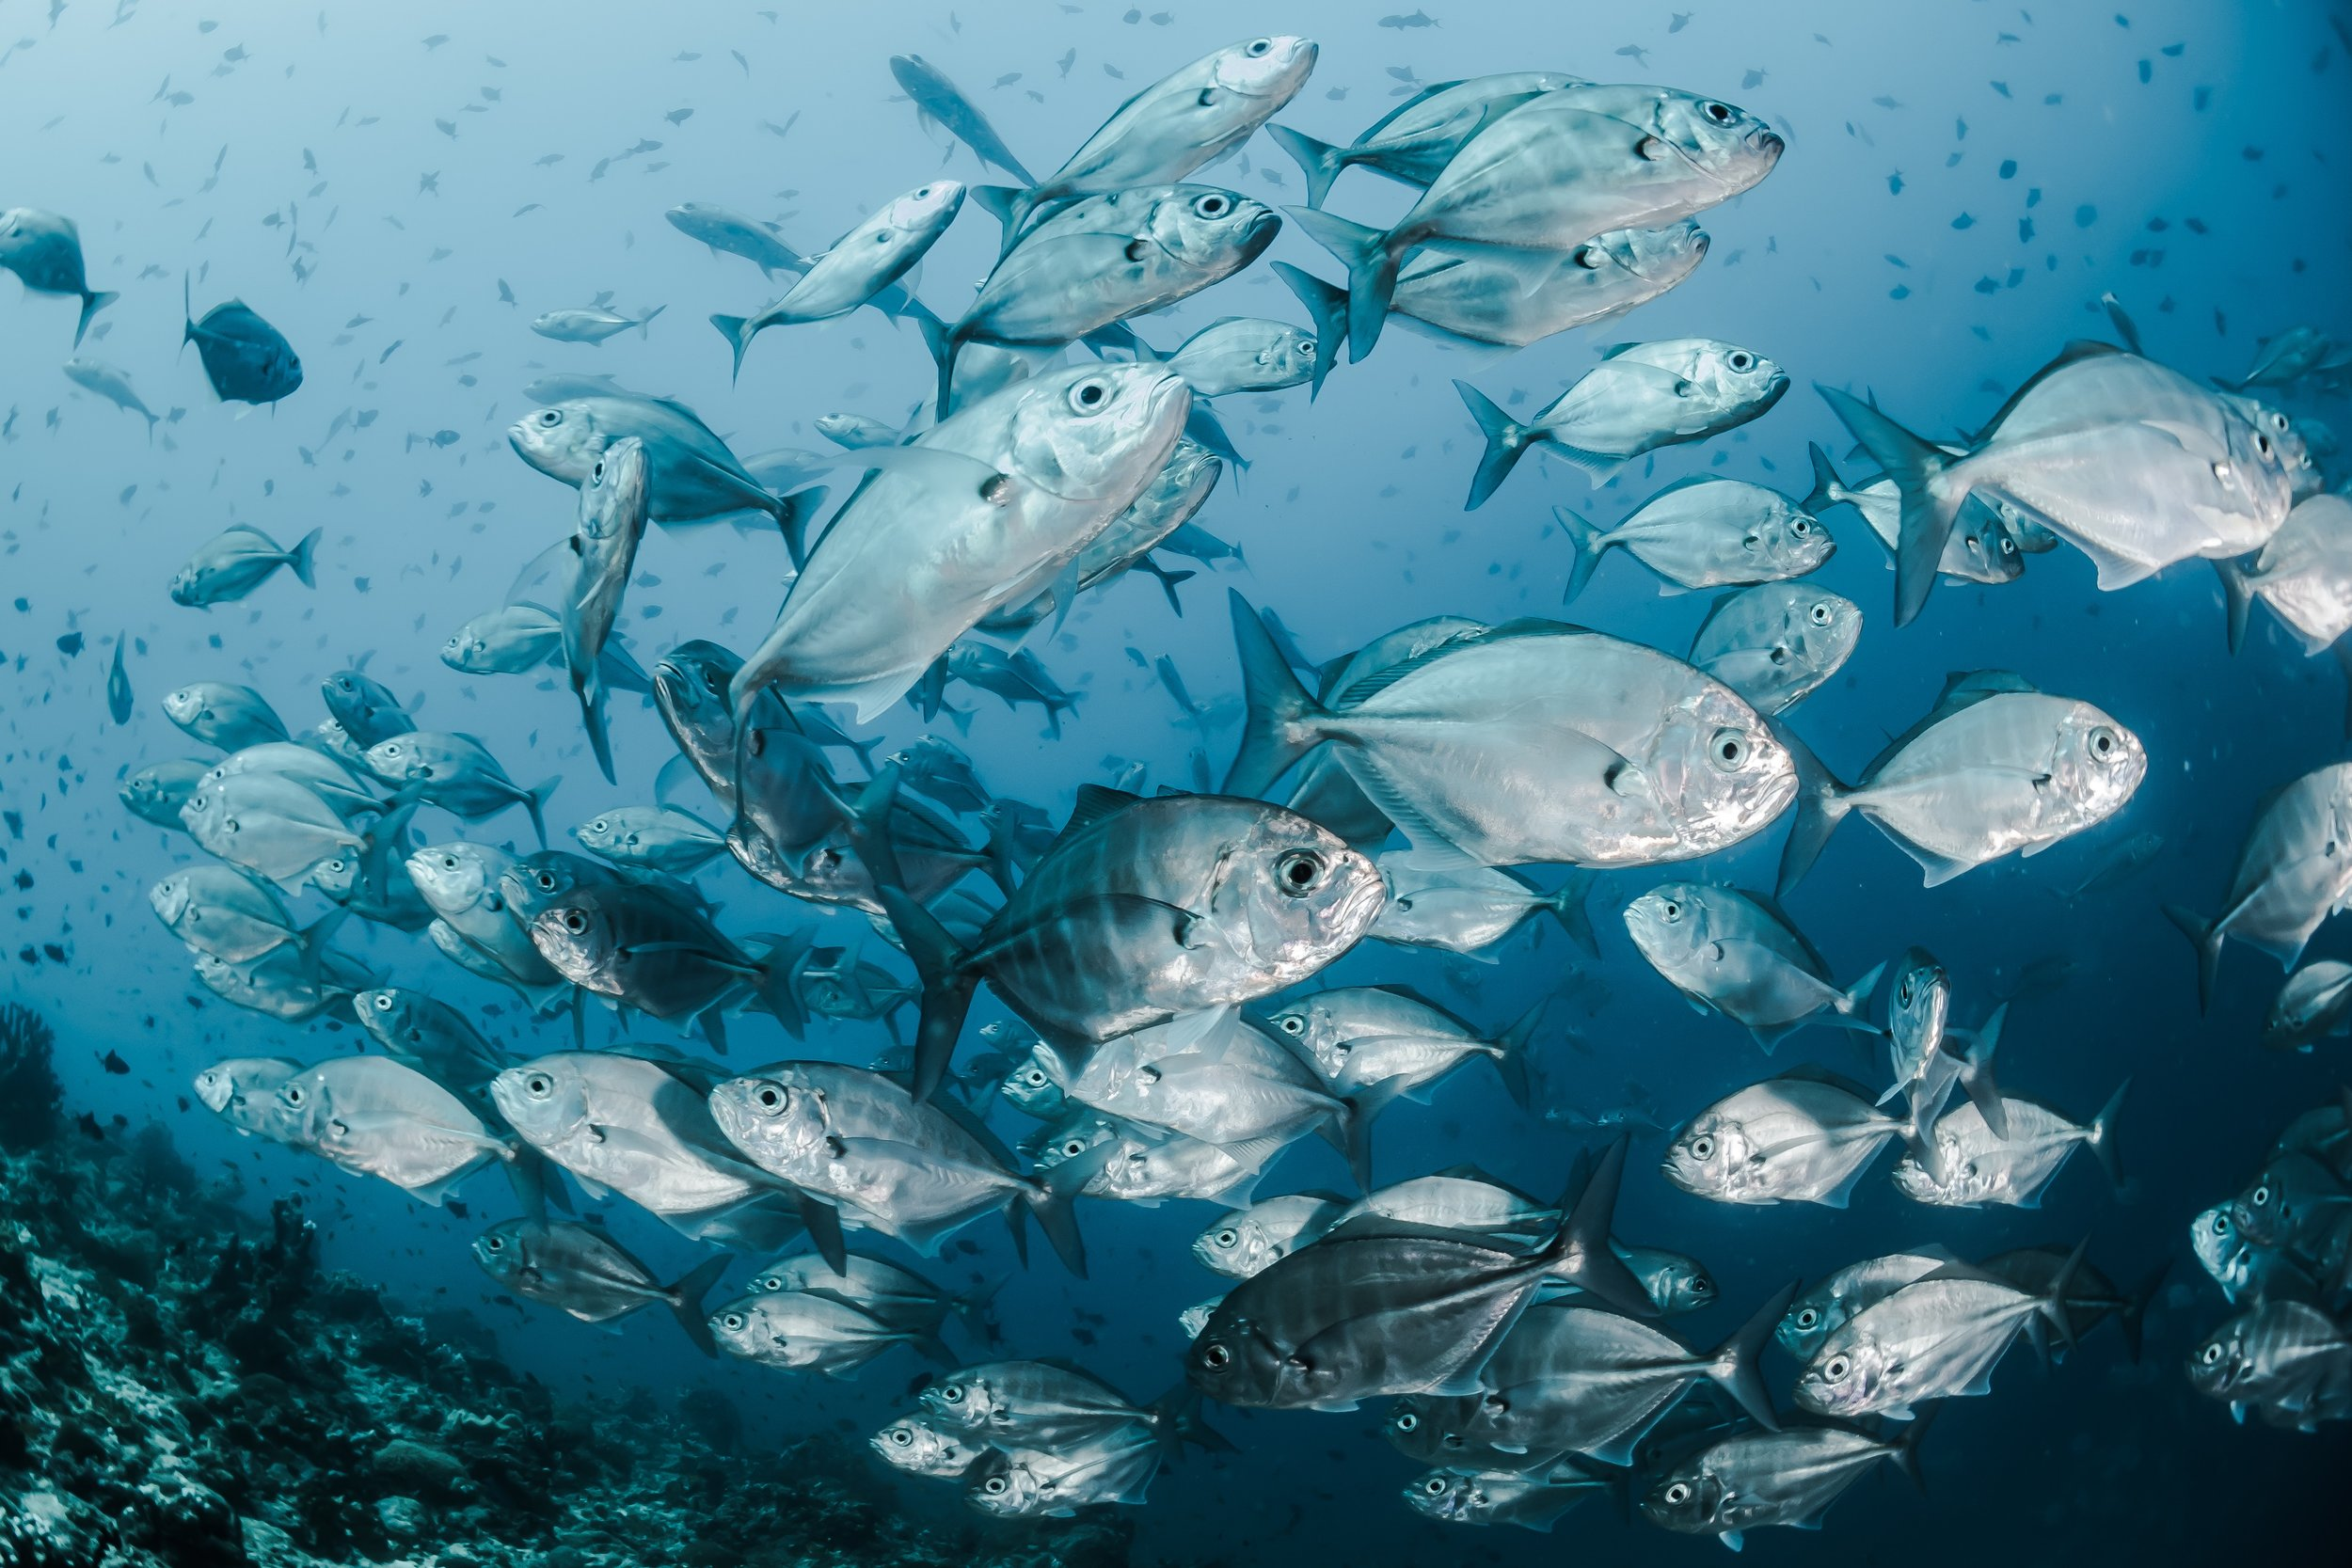 New startups are hoping to provide an alternative to conventionally fished seafood by growing seafood in a lab. Ninety percent of wild fisheries are currently classified as overfished or harvested at maximum capacity.  Photo source